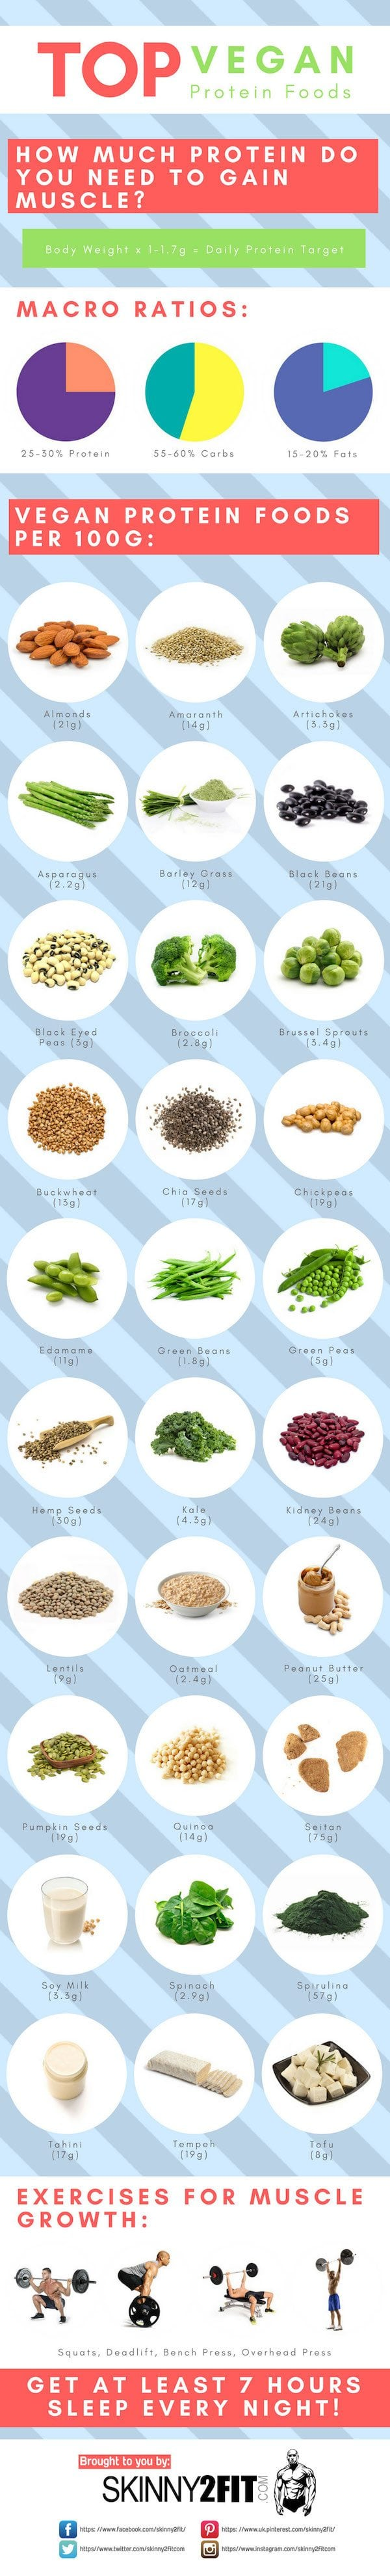 Top Vegan Proteins